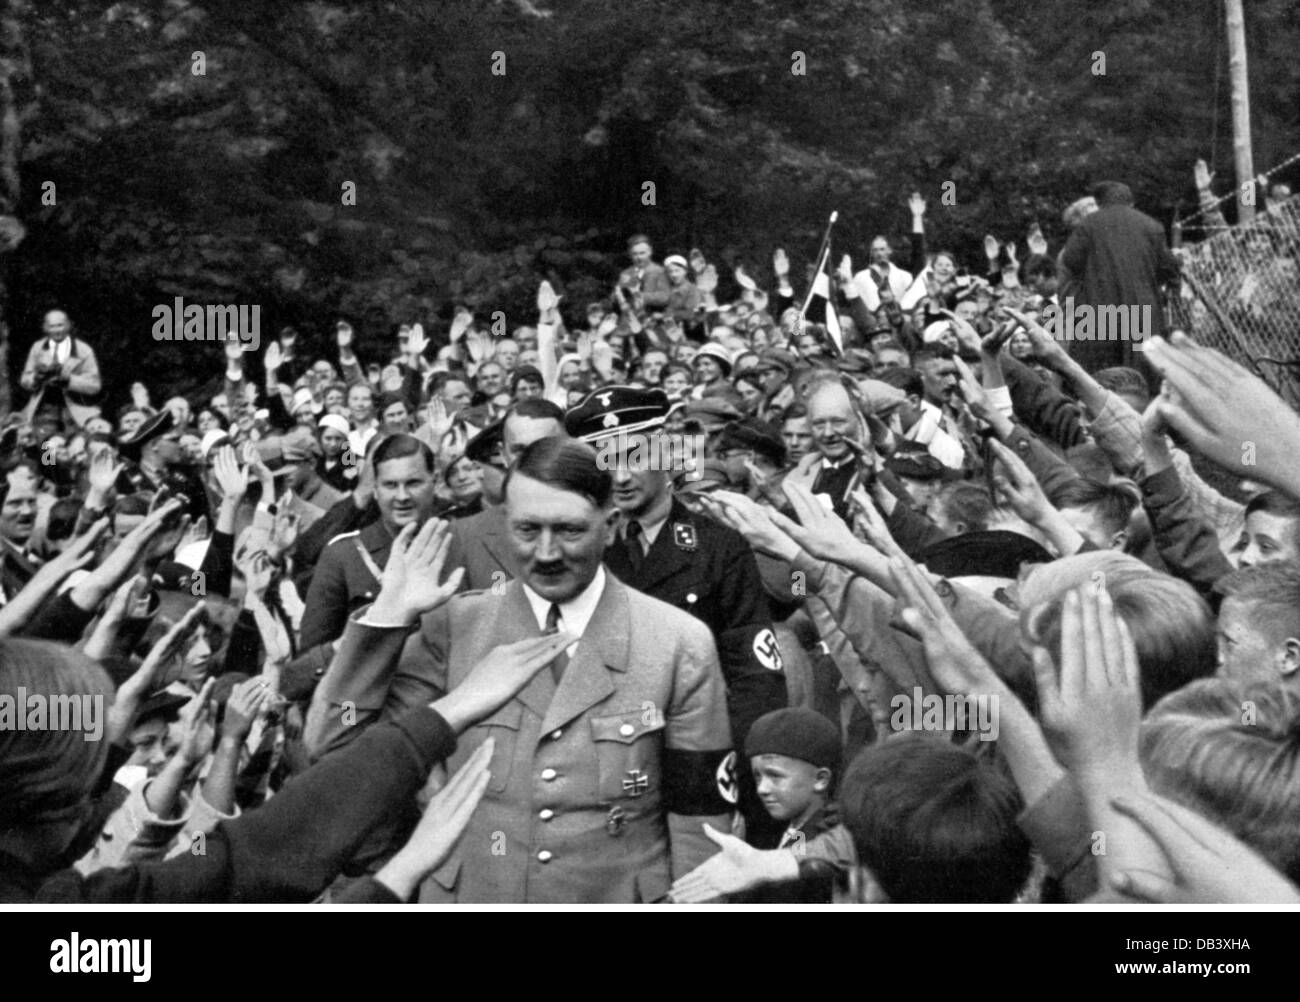 Hitler, Adolf, 20.4.1889 - 30.4.1945, German politician (NSDAP), in a crowd in front of the Berghof, Obersalzberg, Stock Photo